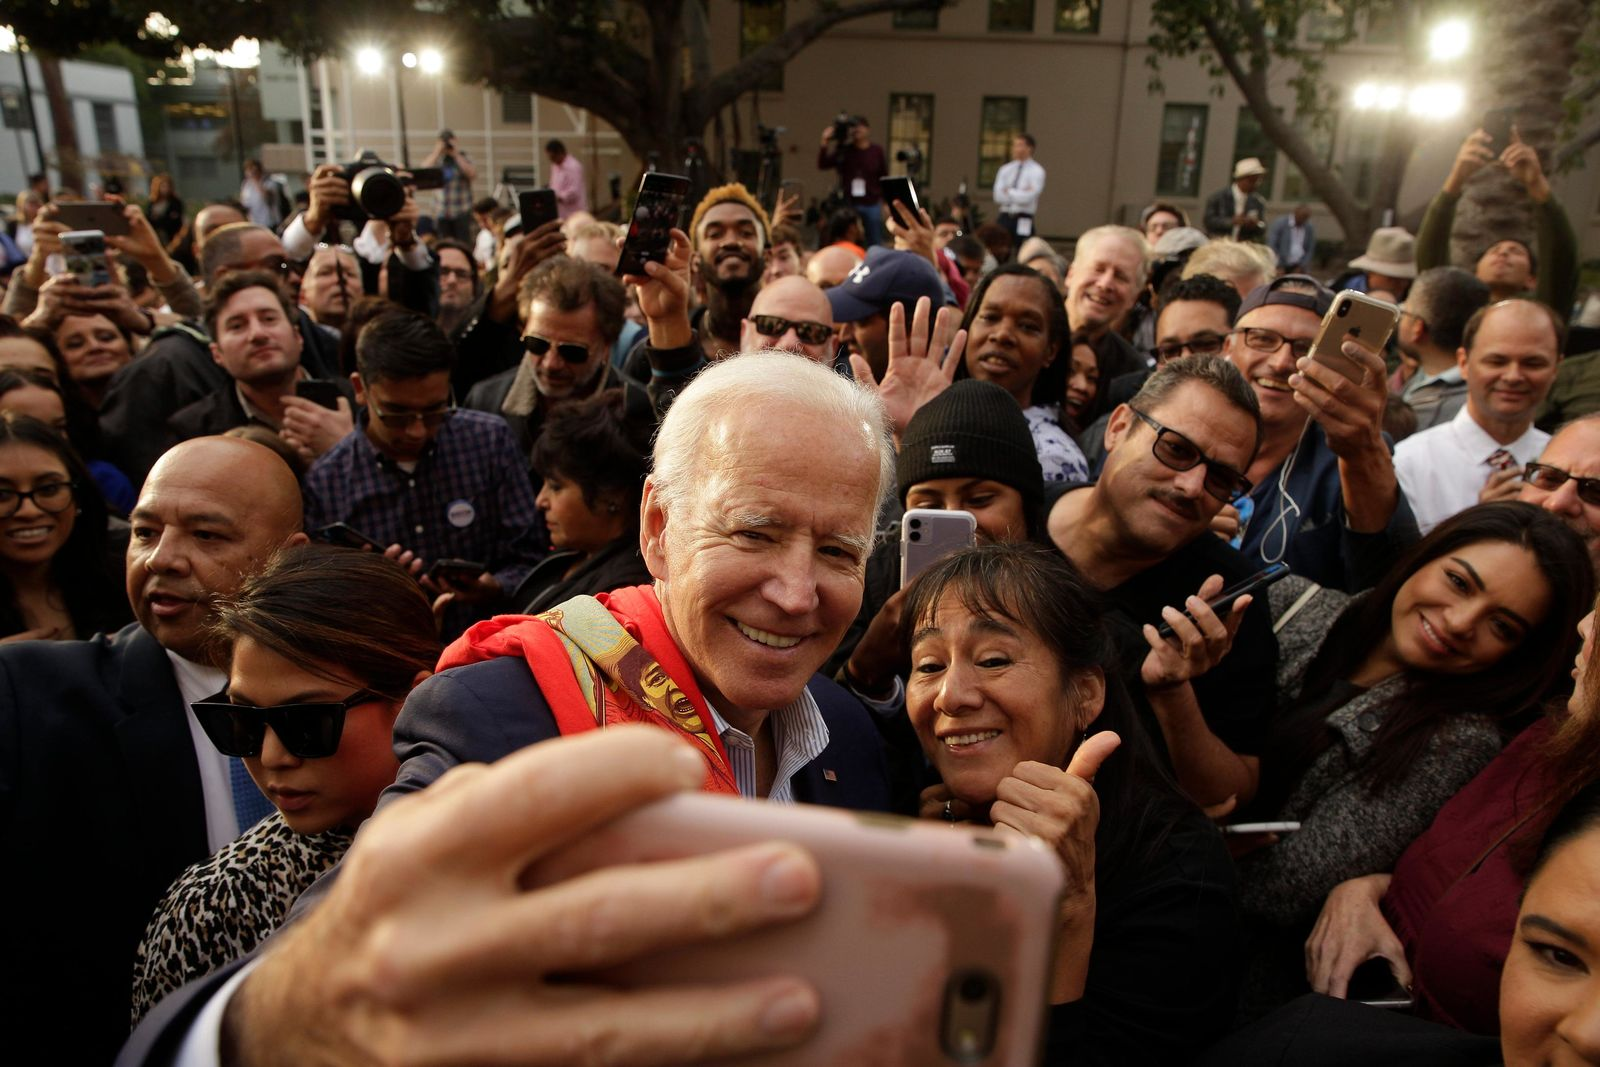 Democratic presidential candidate former Vice President Joe Biden takes selfies with supporters at a campaign rally at Los Angeles Trade Technical College in Los Angeles Thursday, Nov. 14, 2019. (AP Photo/Damian Dovarganes)